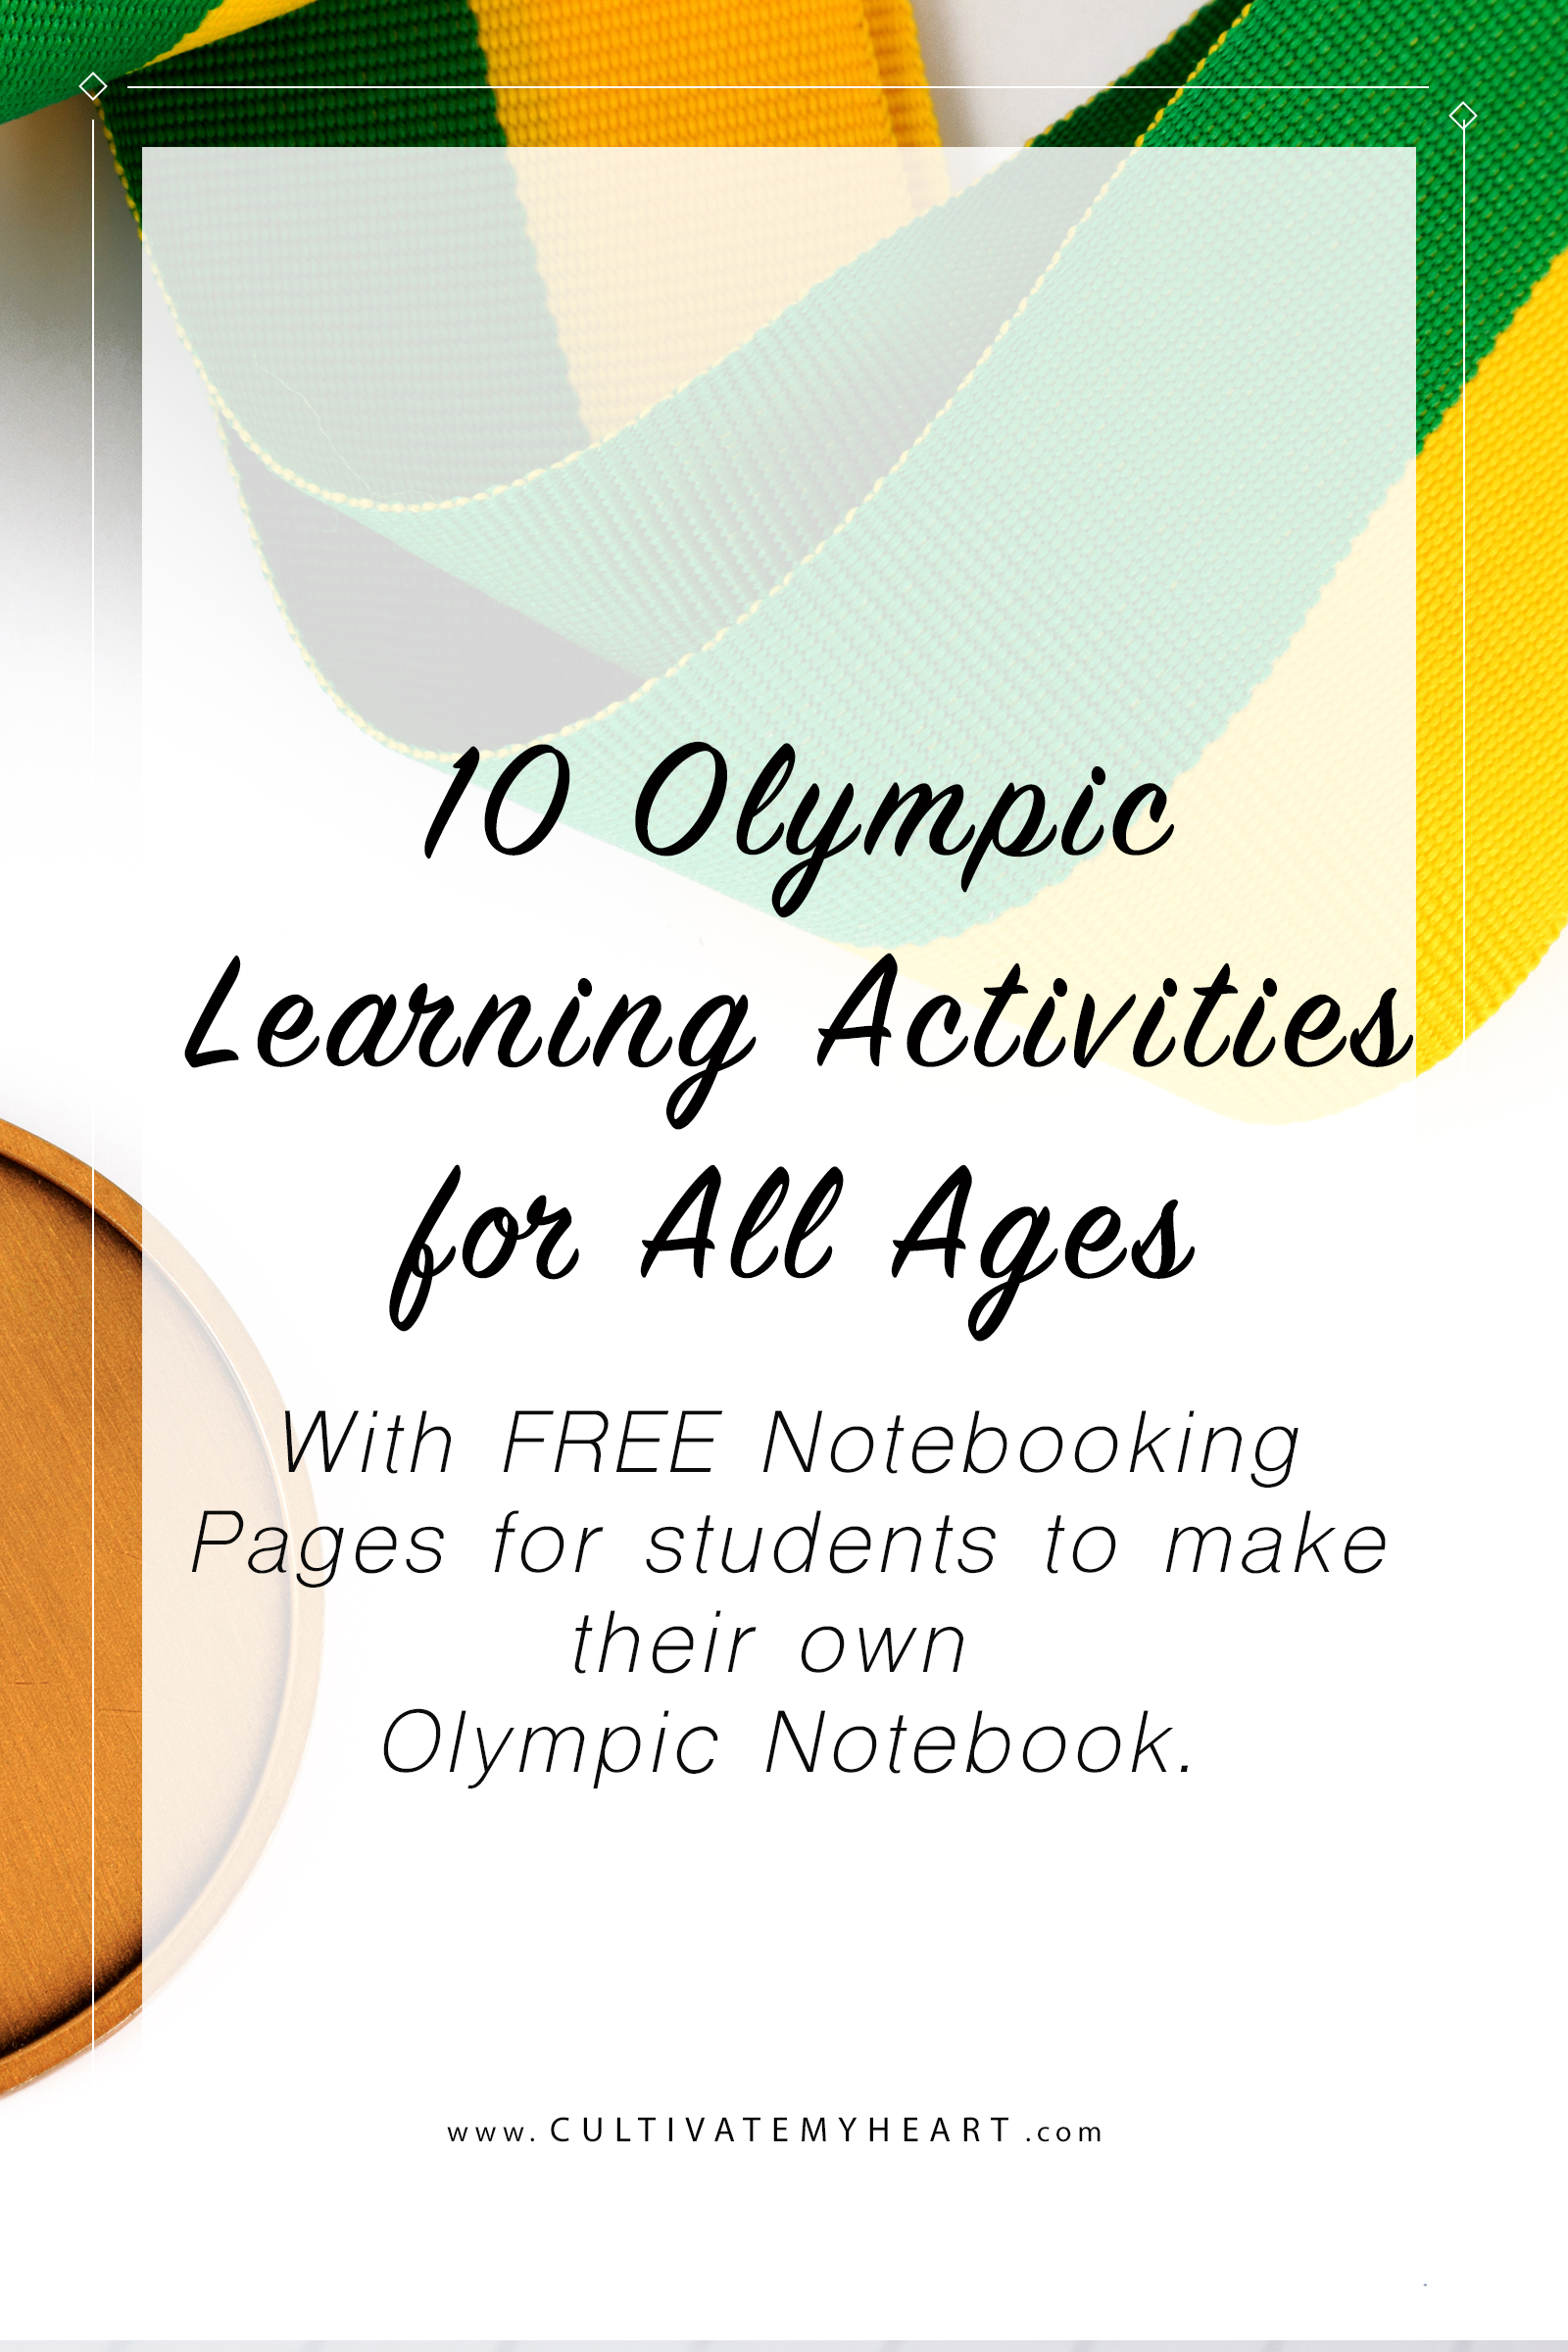 Teach multiple subjects while enjoying the Olympics! The 2018 Winter Olympics are a great opportunity to enjoy fun learning activities in your homeschool no matter what ages your children are. Includes FREE notebooking pages for students to create their own Olympic notebook.